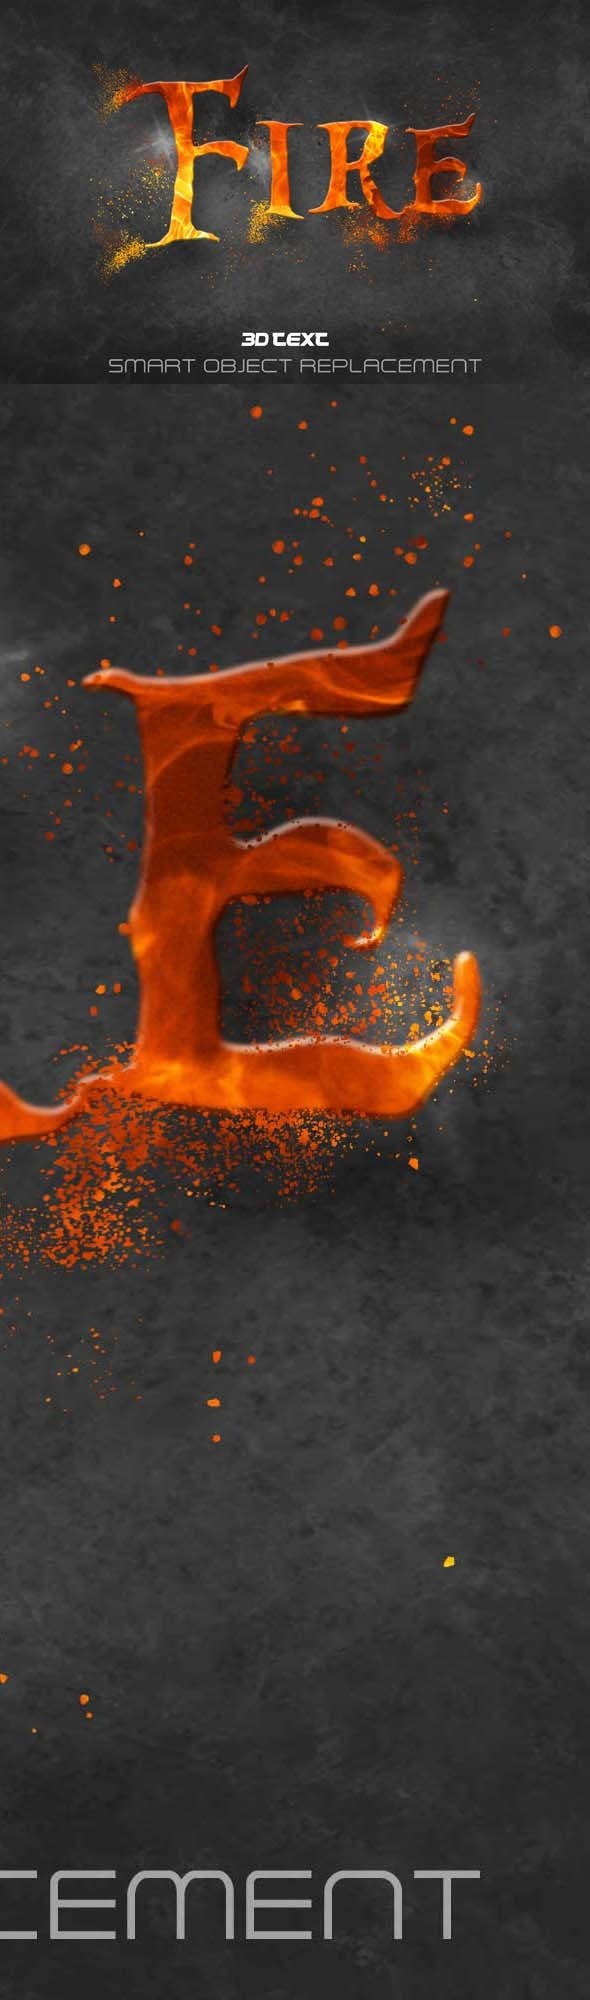 Fire Text Effect Styles - Text Effects Styles